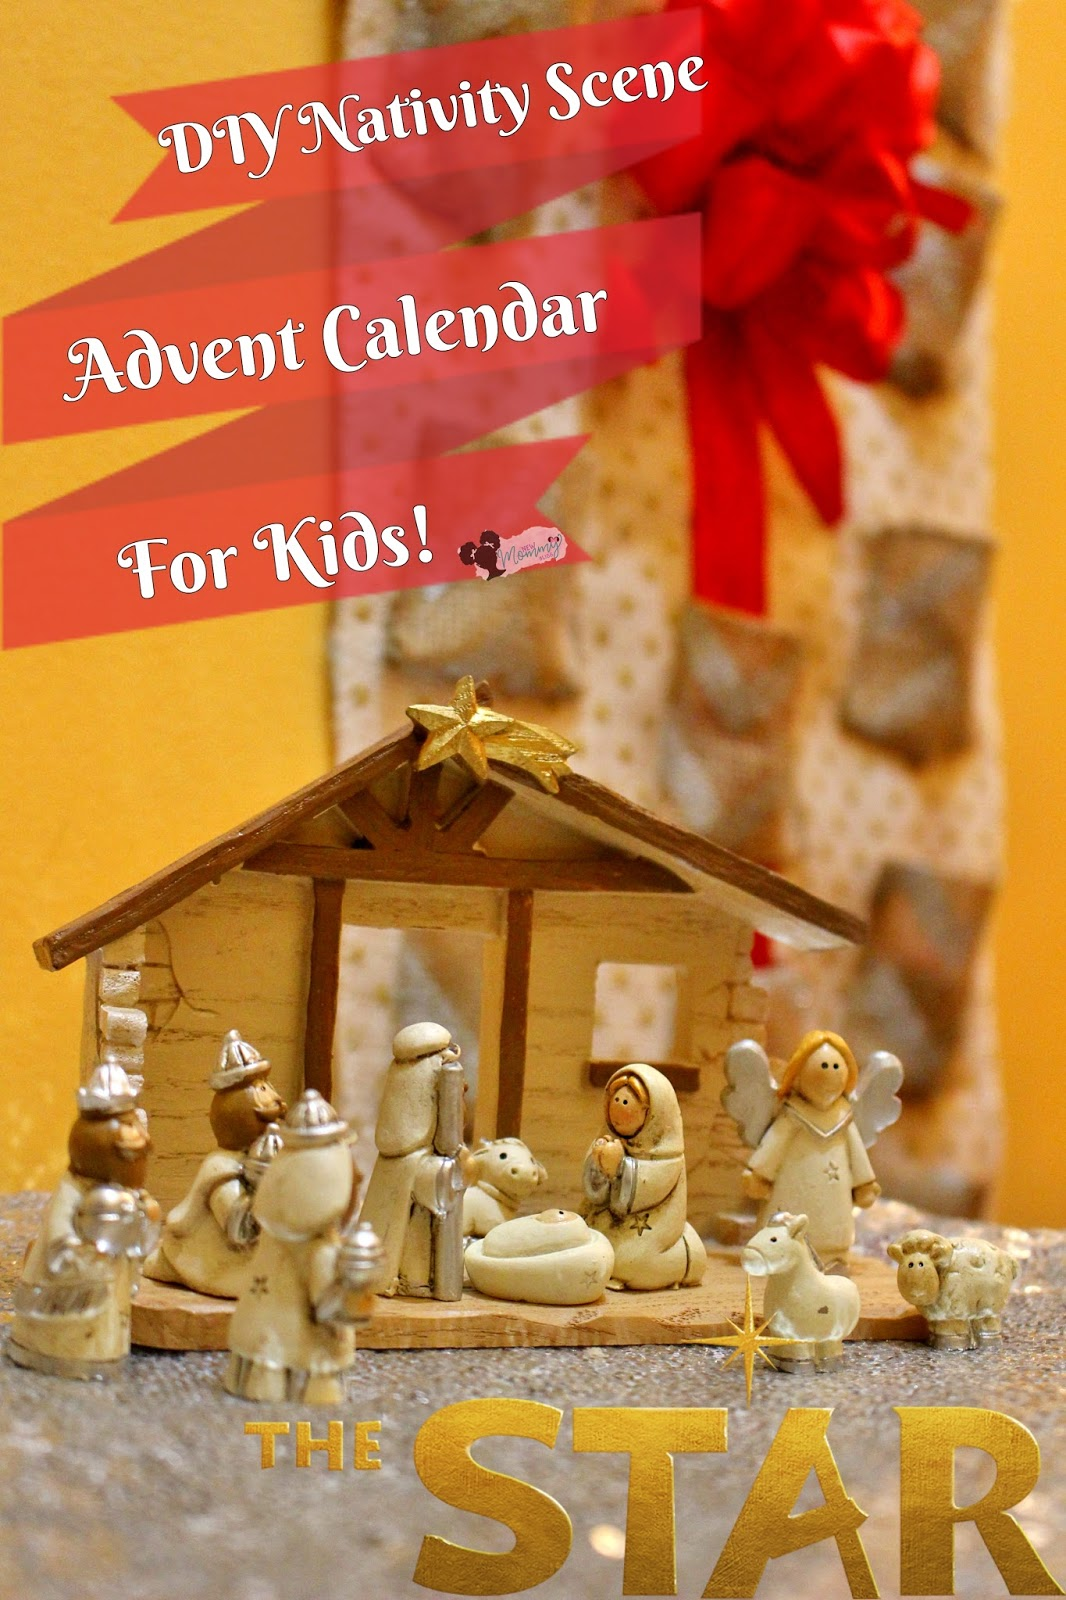 Calendar Advent Diy : Diy nativity advent calendar for kids thestar new mommy